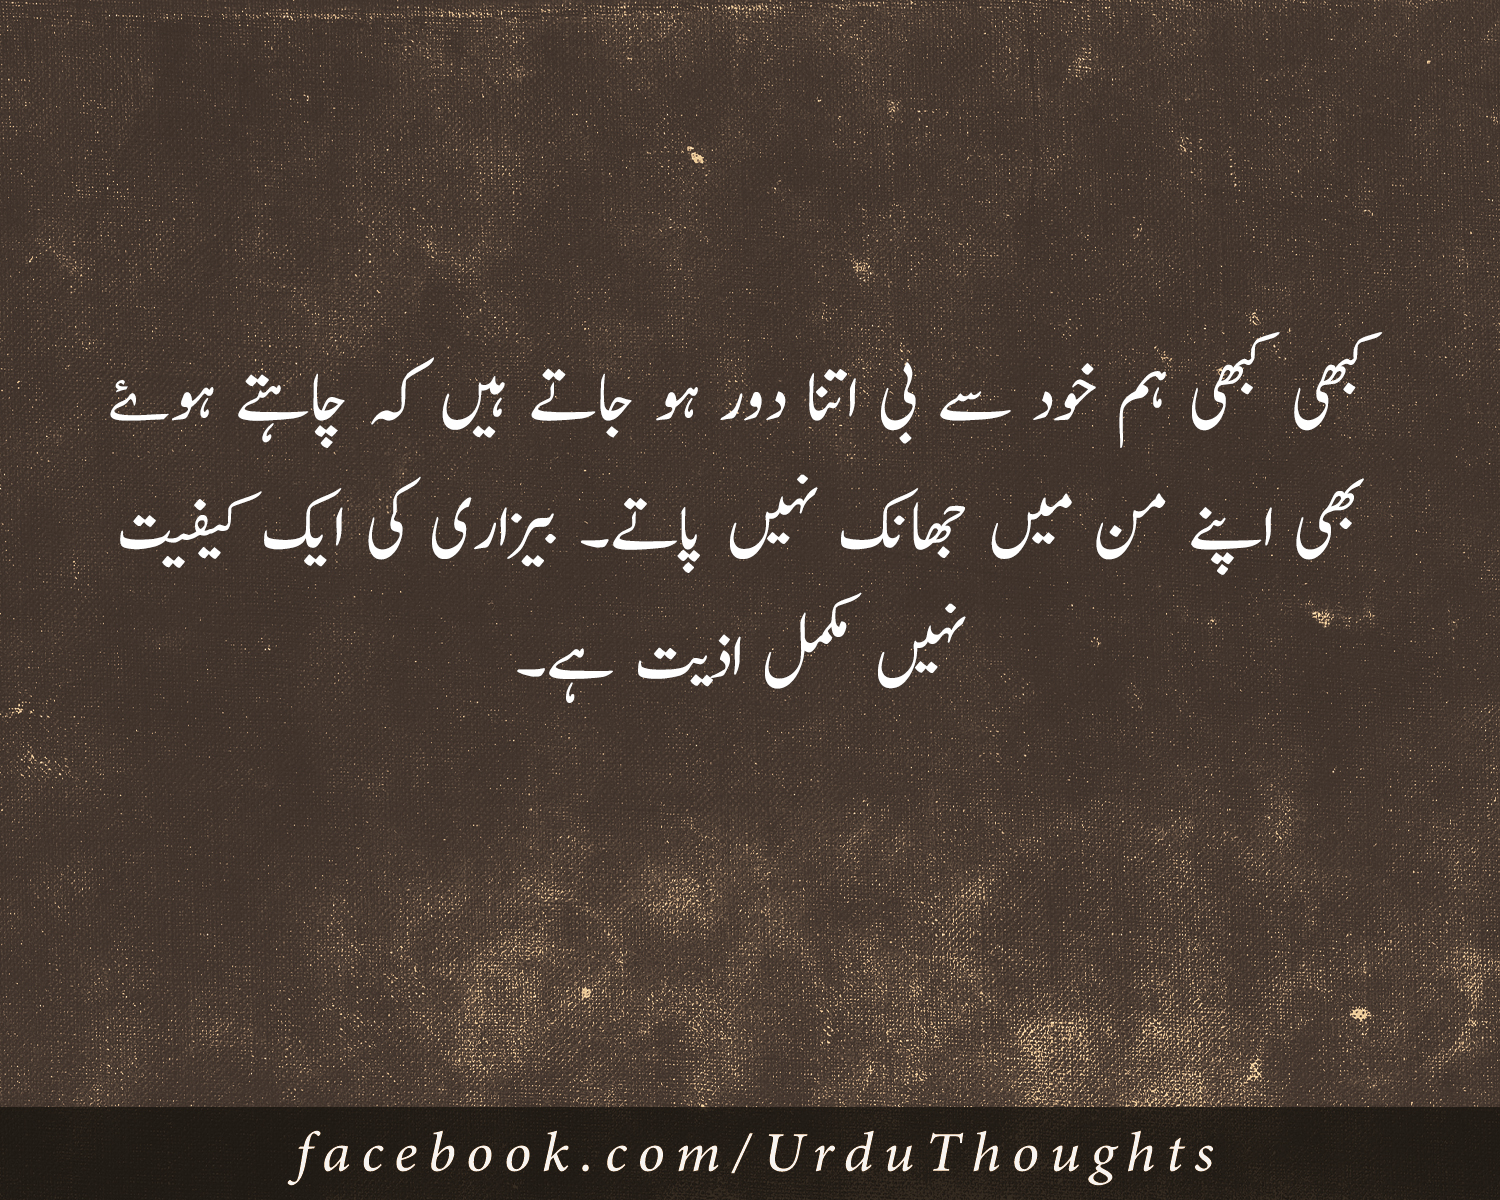 10 Urdu Quotes Images About Zindagi, Success and People